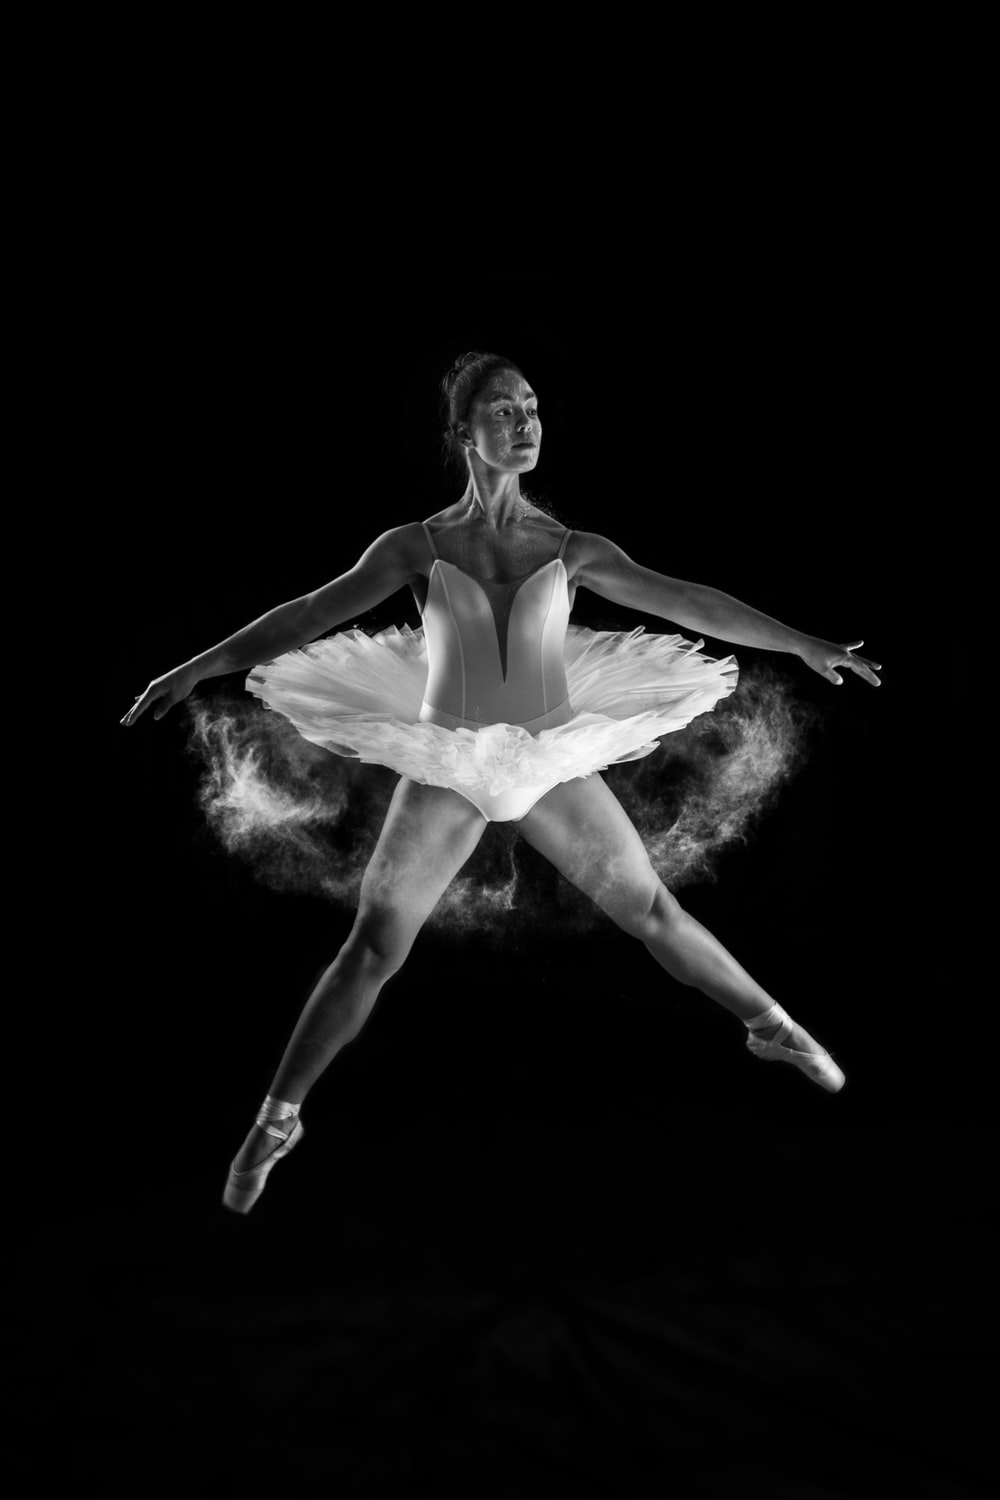 woman doing ballet dancing